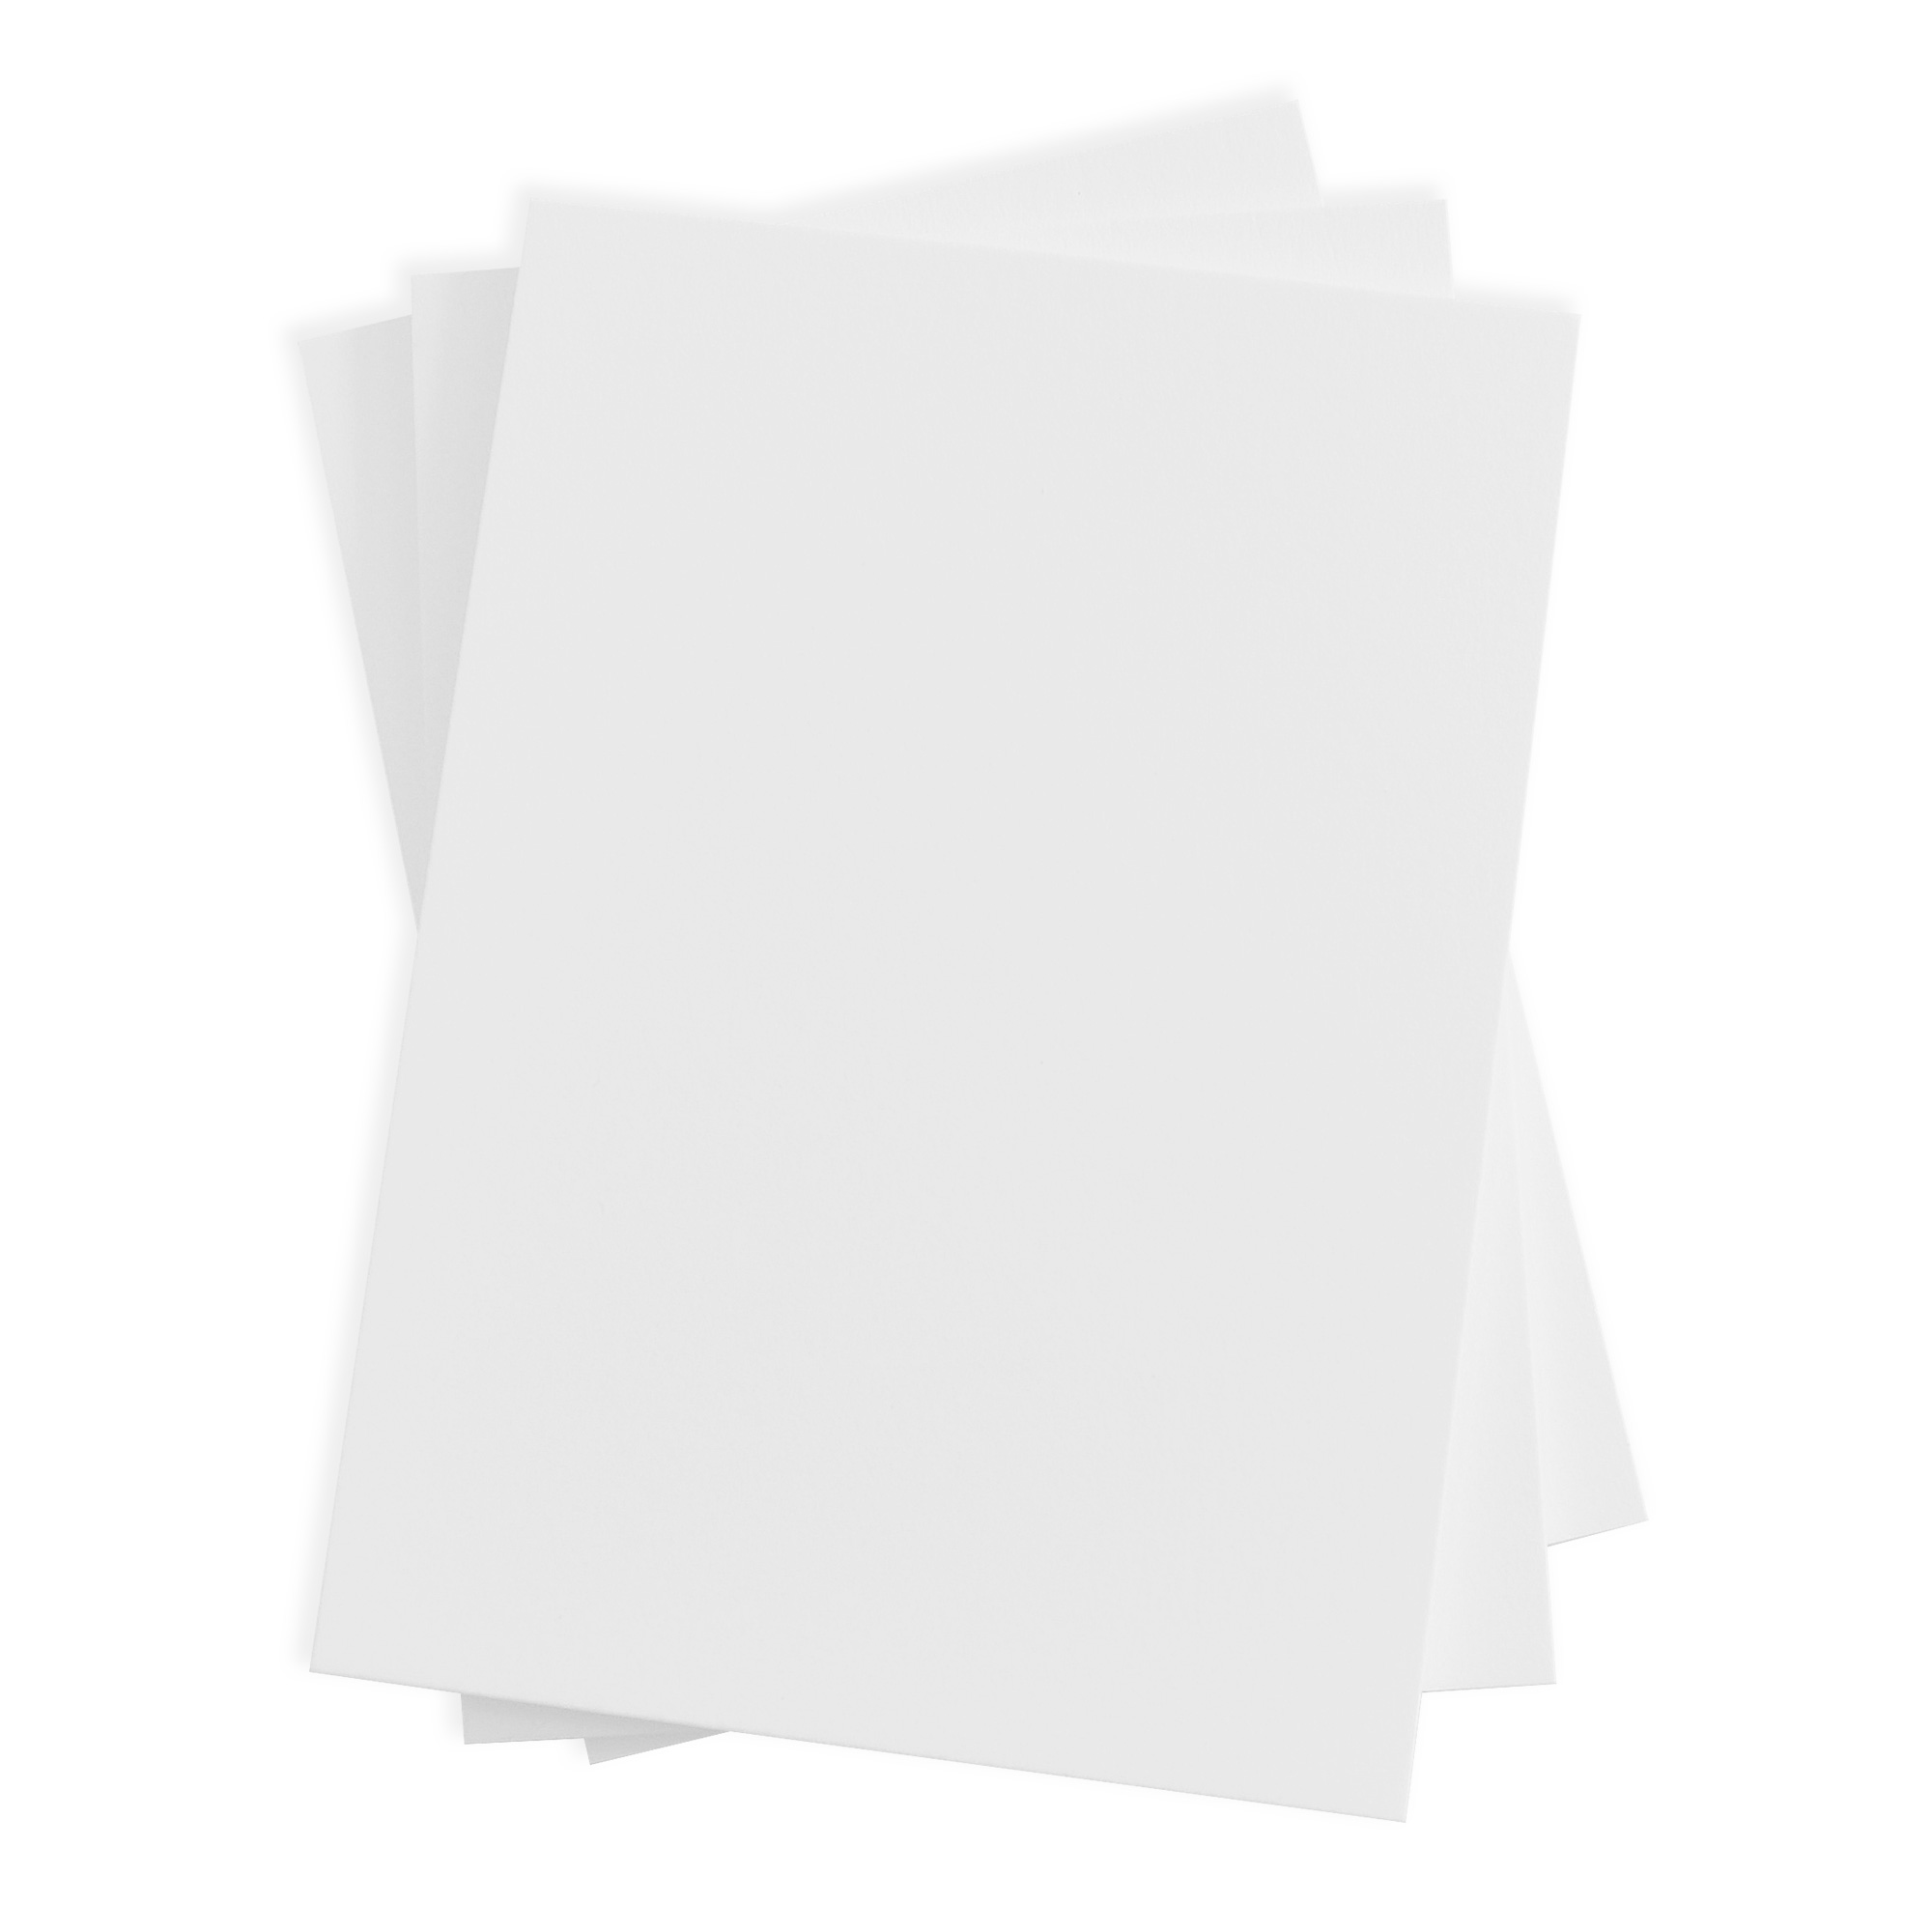 Plain Blank Wedding Invitation - Radiant White (50 Pack)